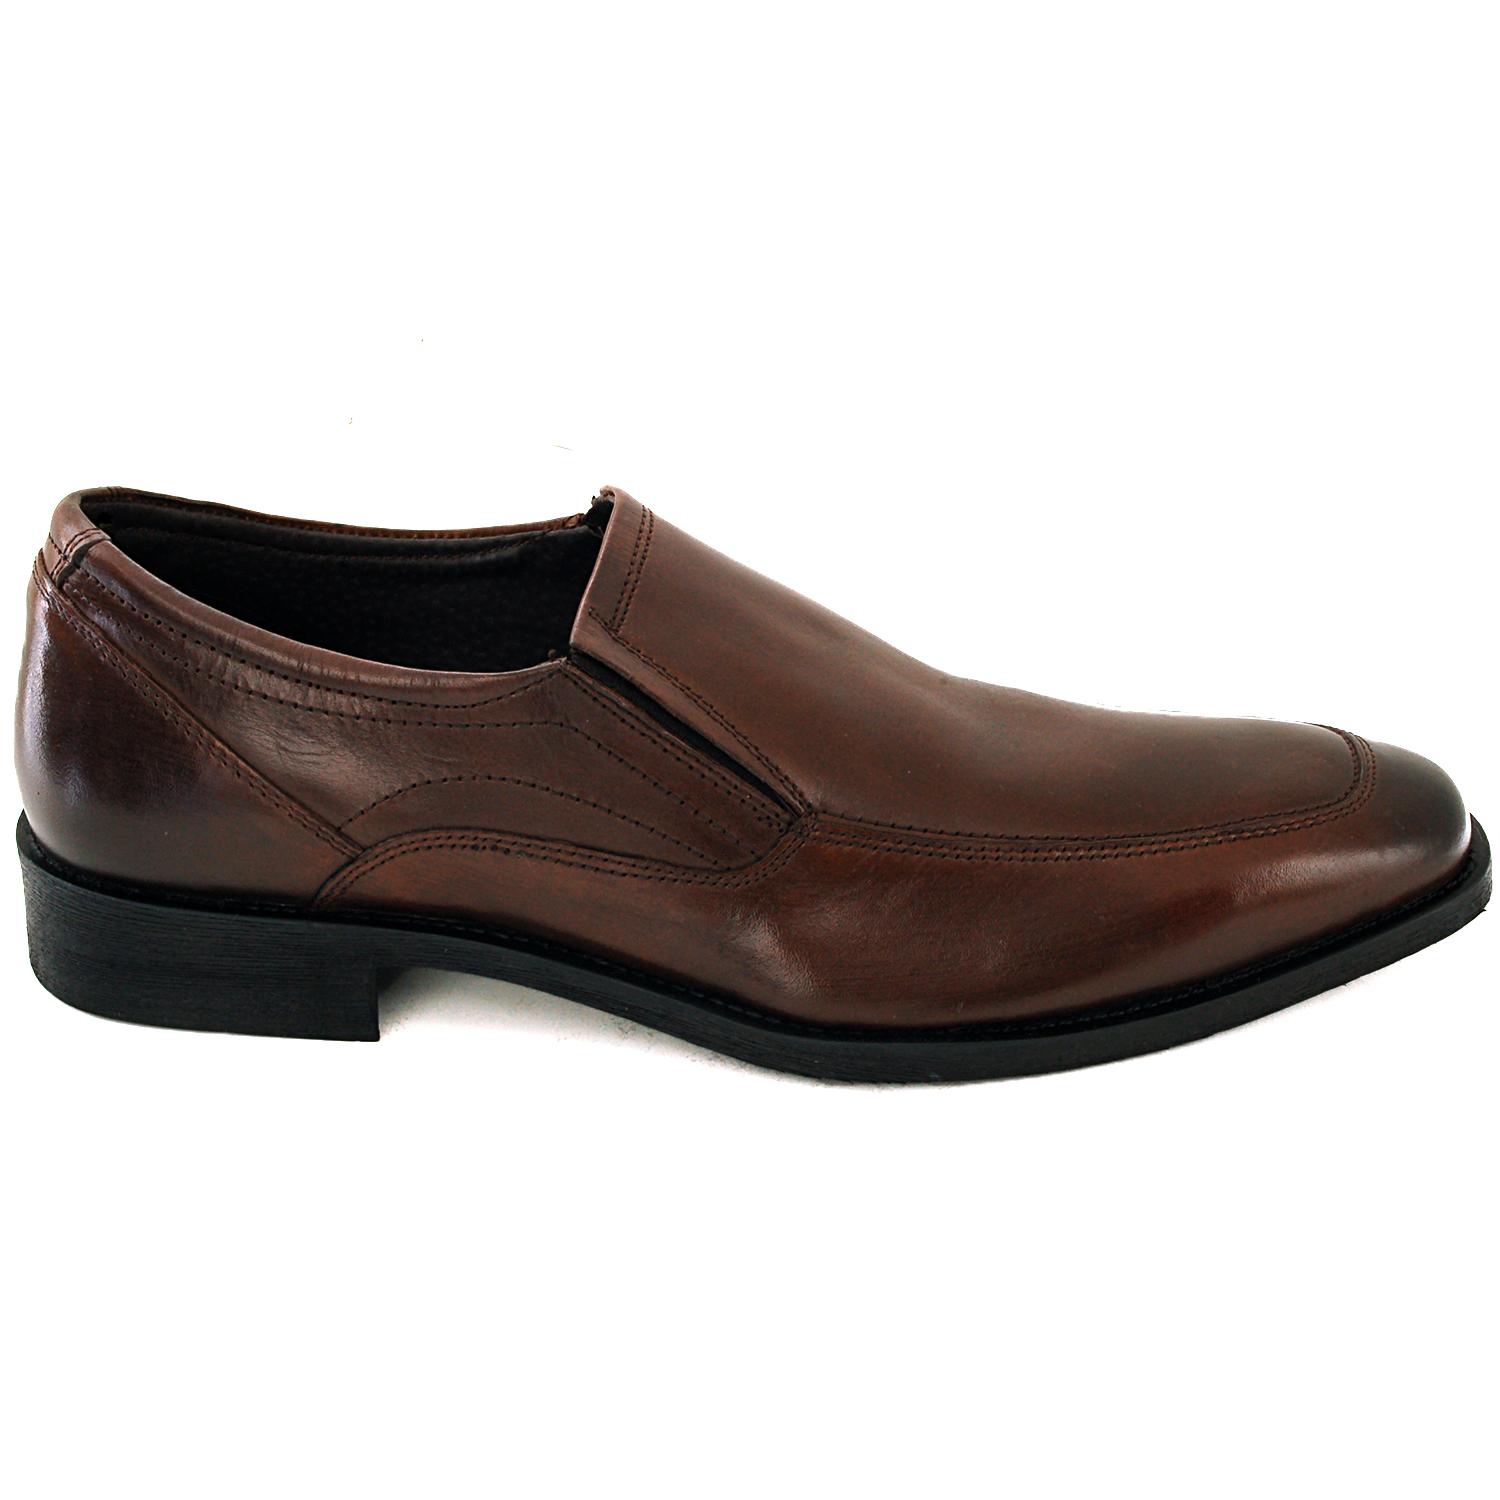 Men's Dress Shoes Leather Slip on Dressy Casual Comfort ...